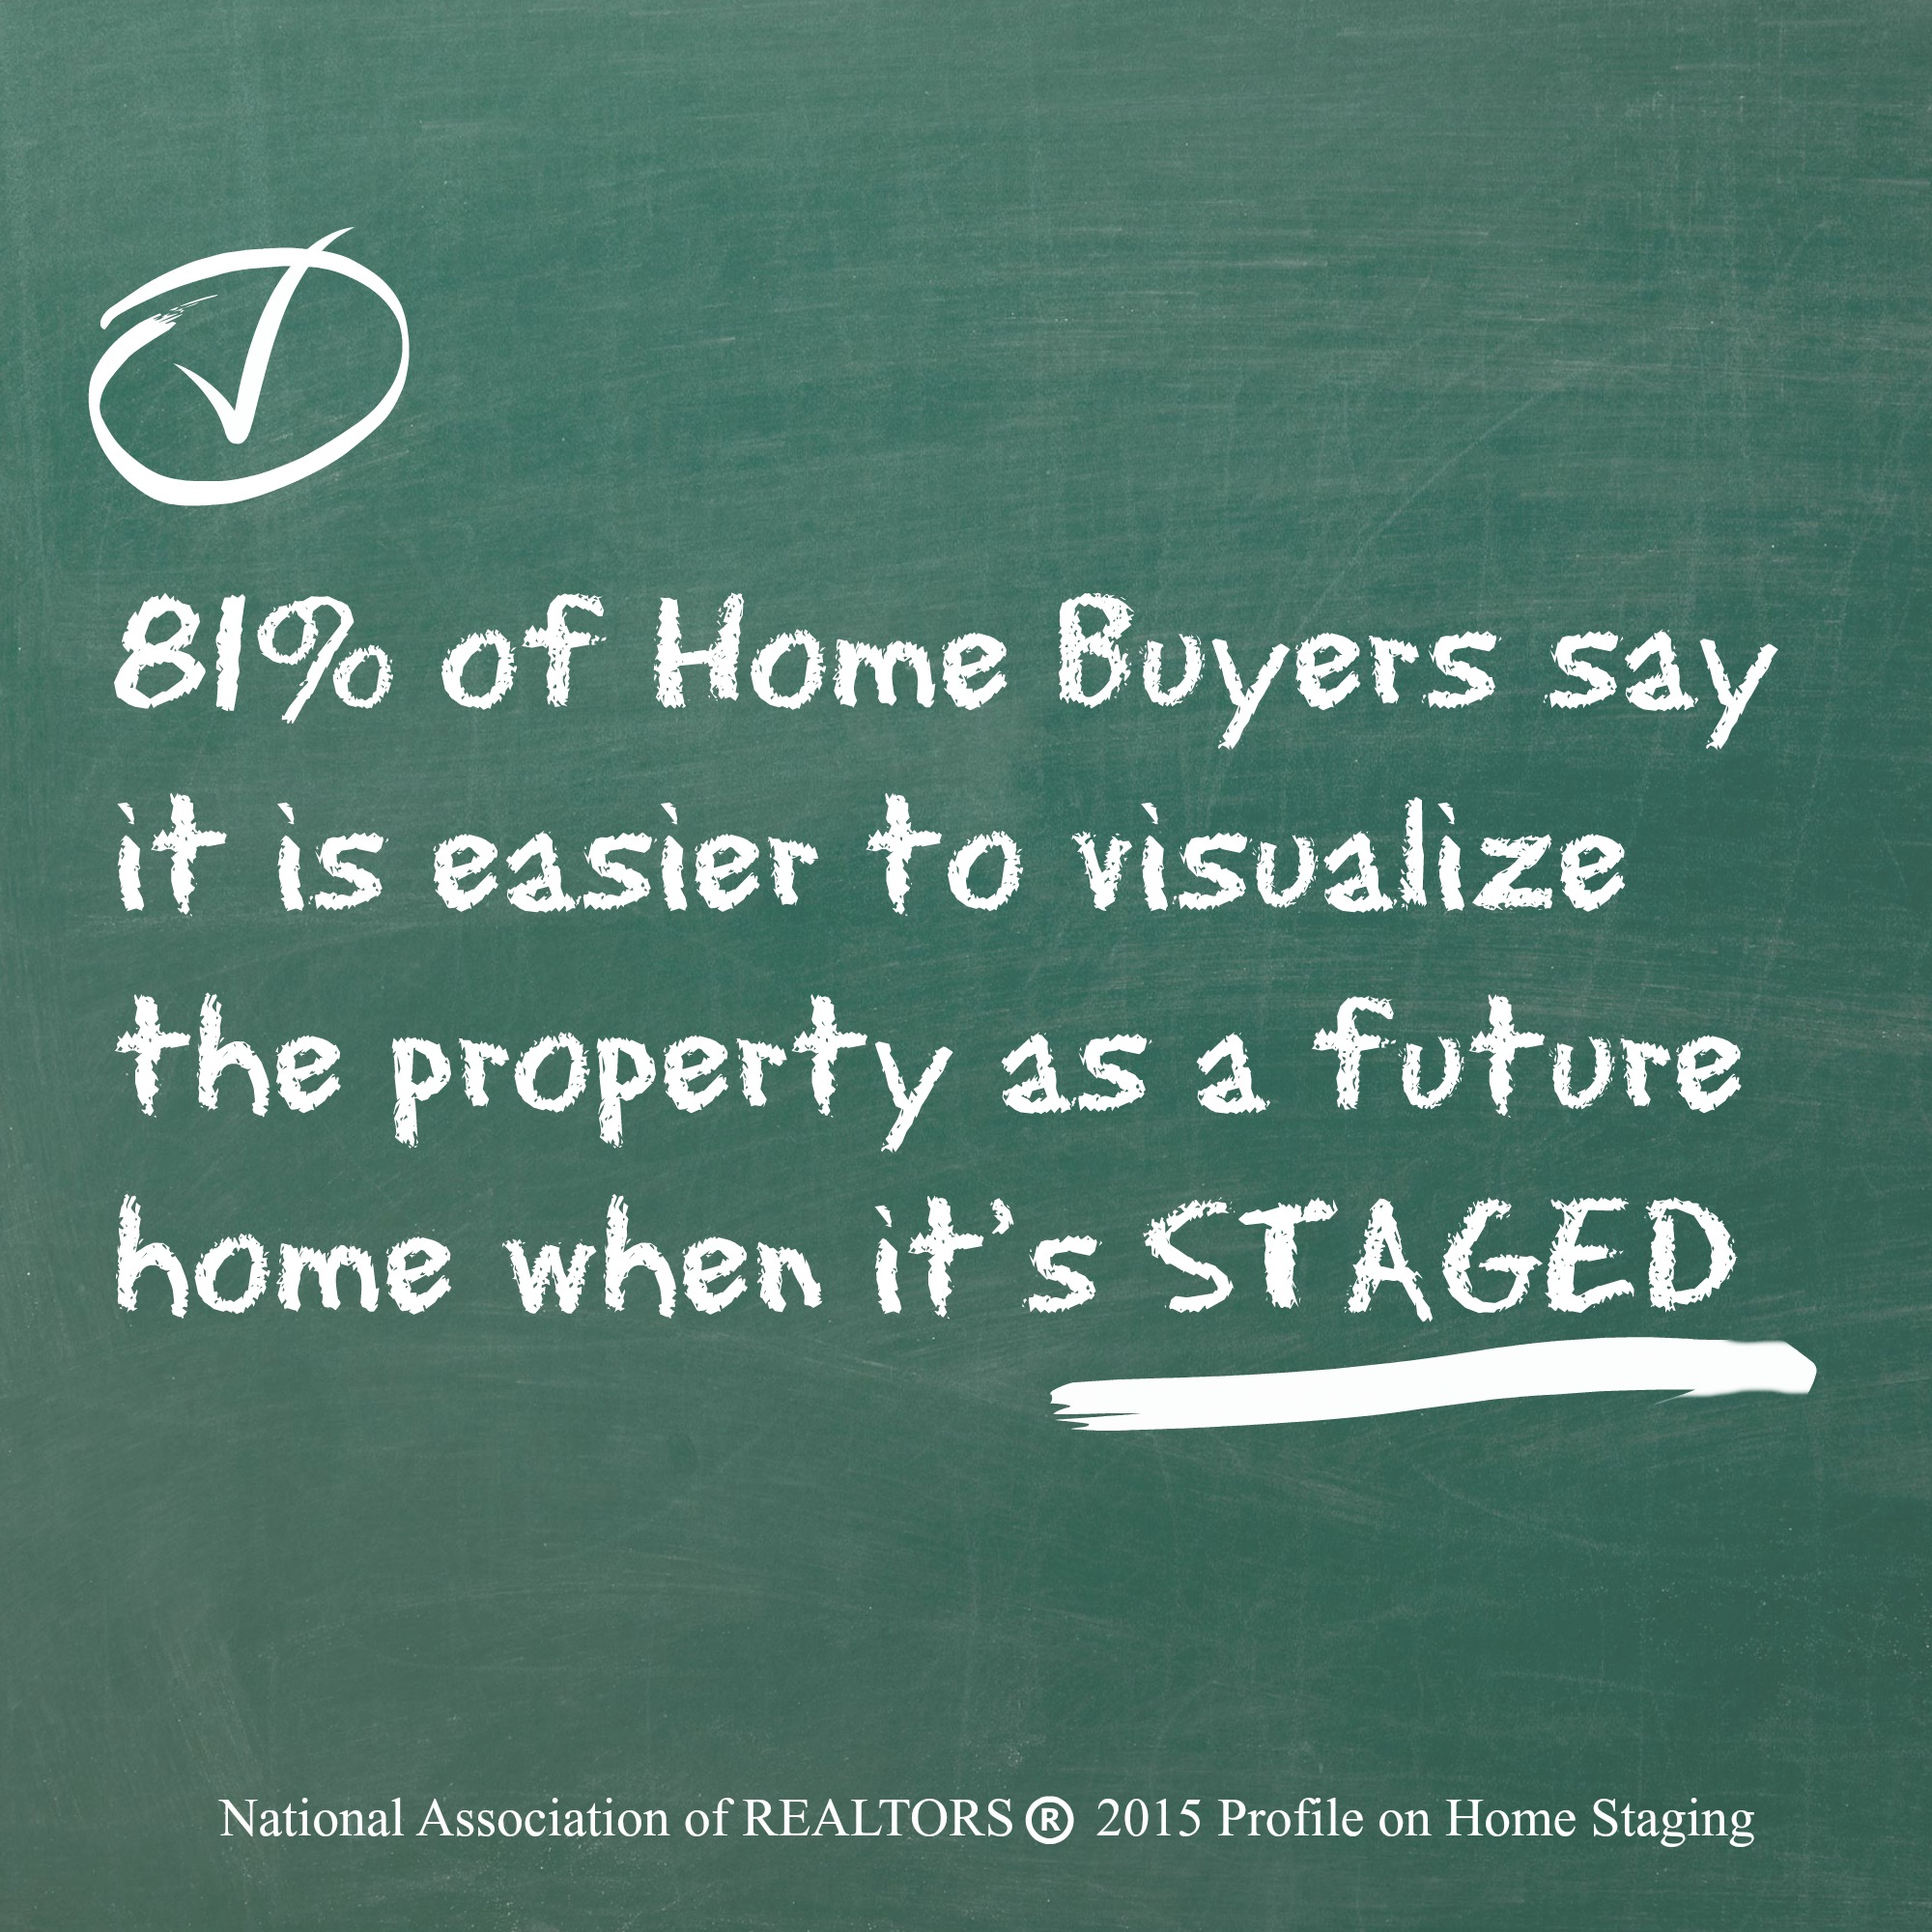 NAR Survey on Home Staging